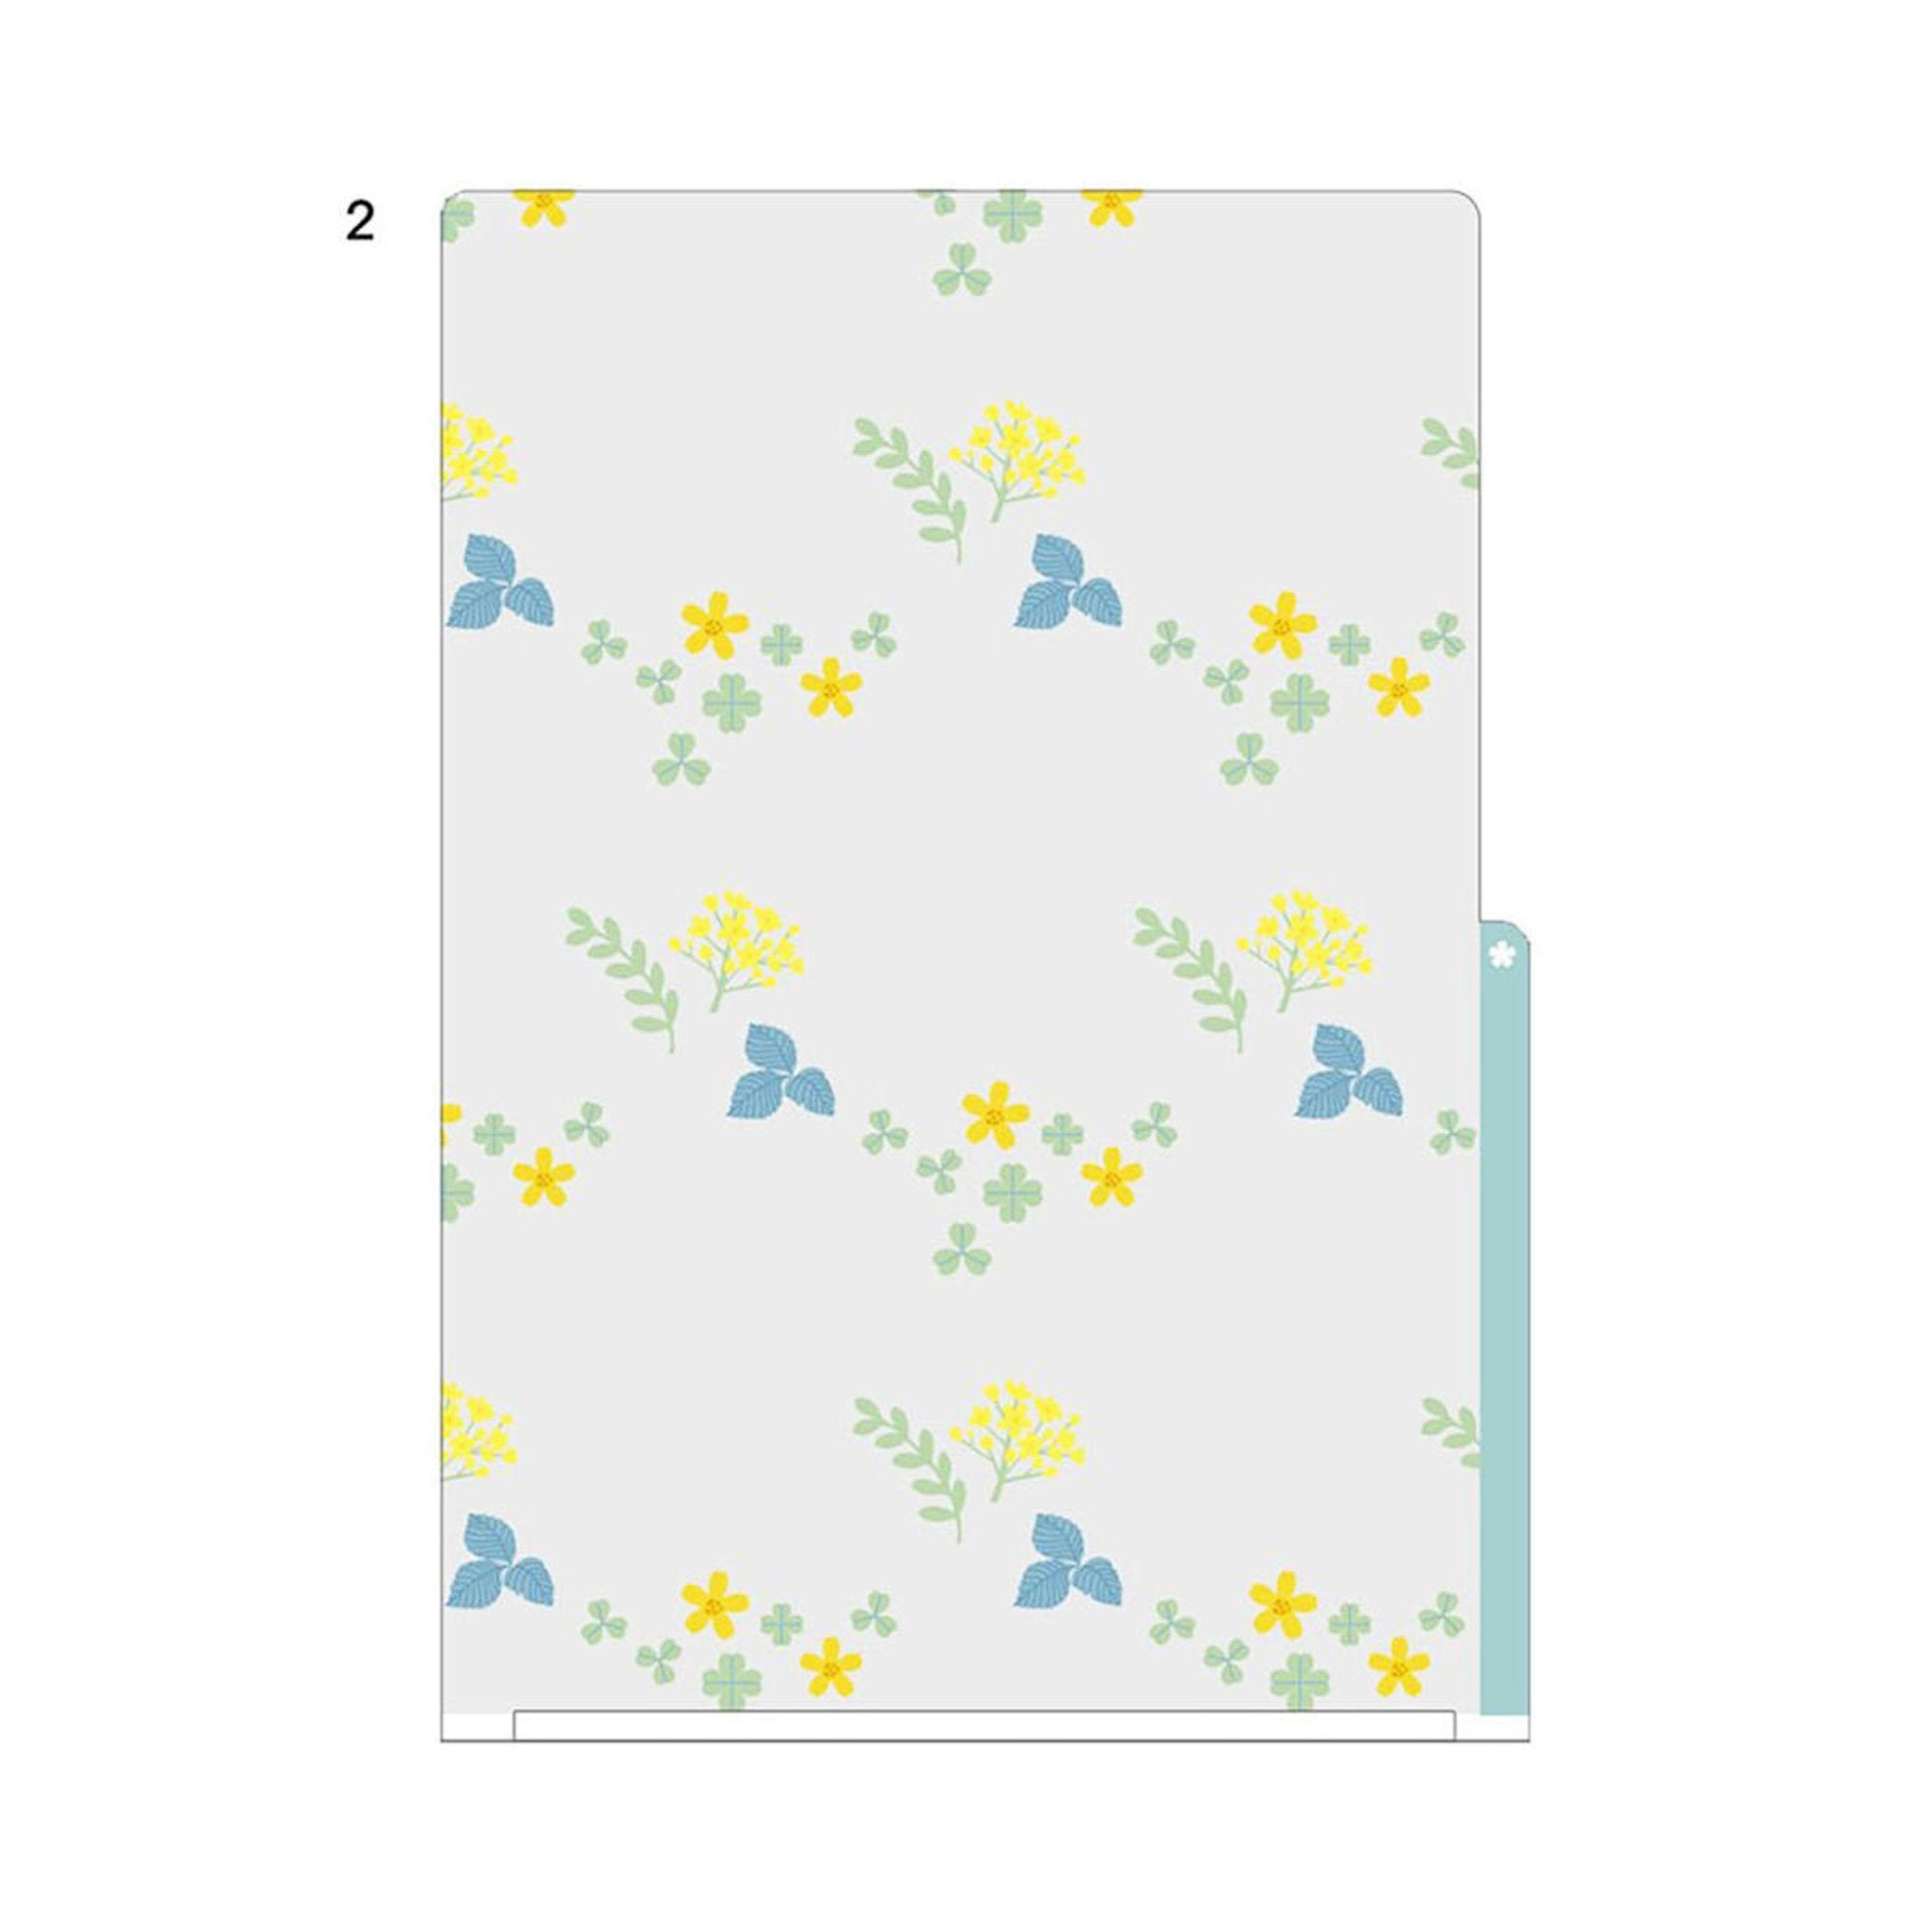 Midori MD A4 3 Pocket Clear Folder | Wildflower Kawaii - The Stationery Life!